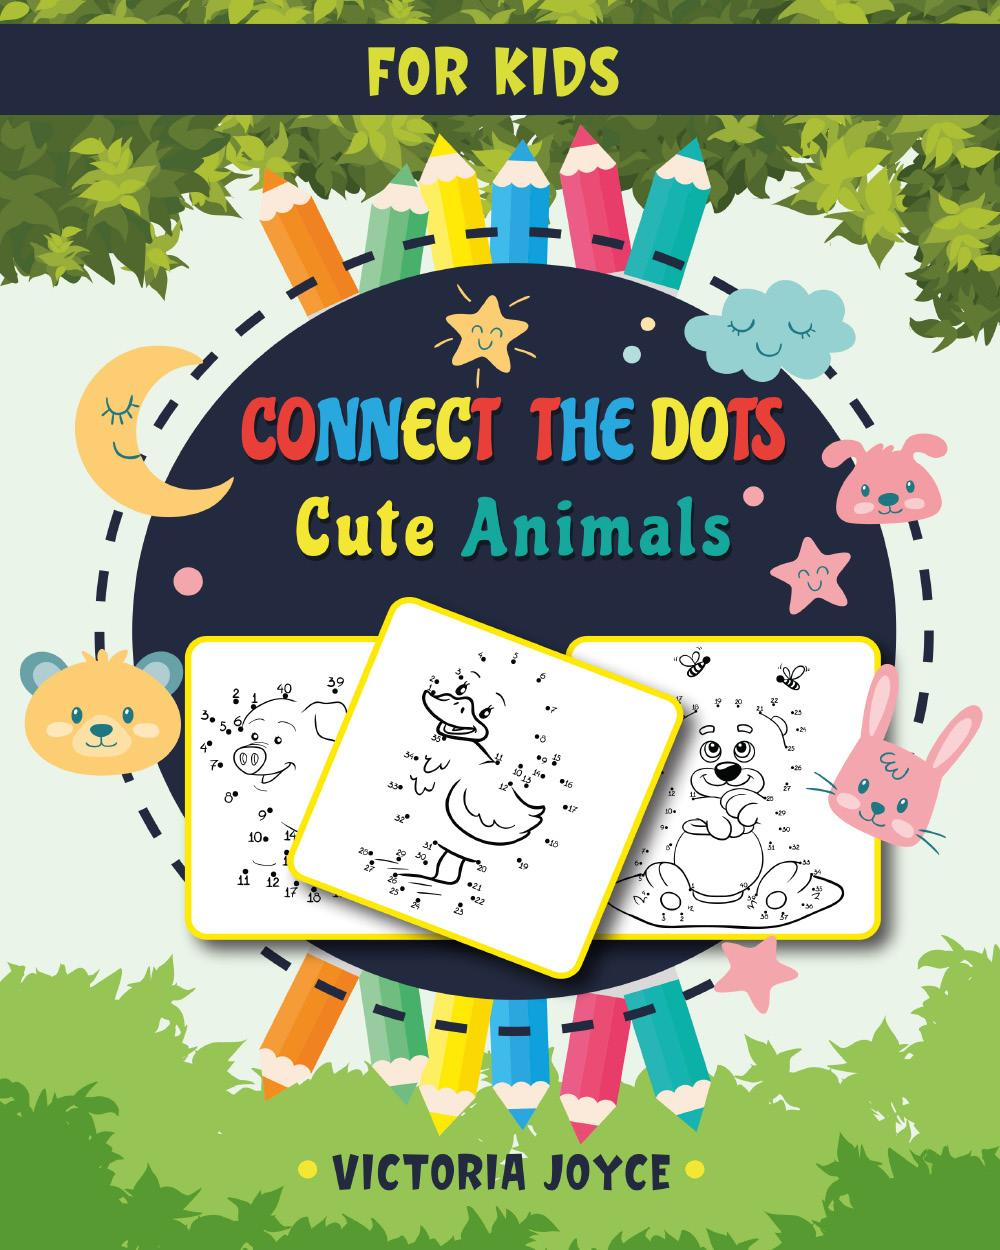 Connect the Dots for Kids